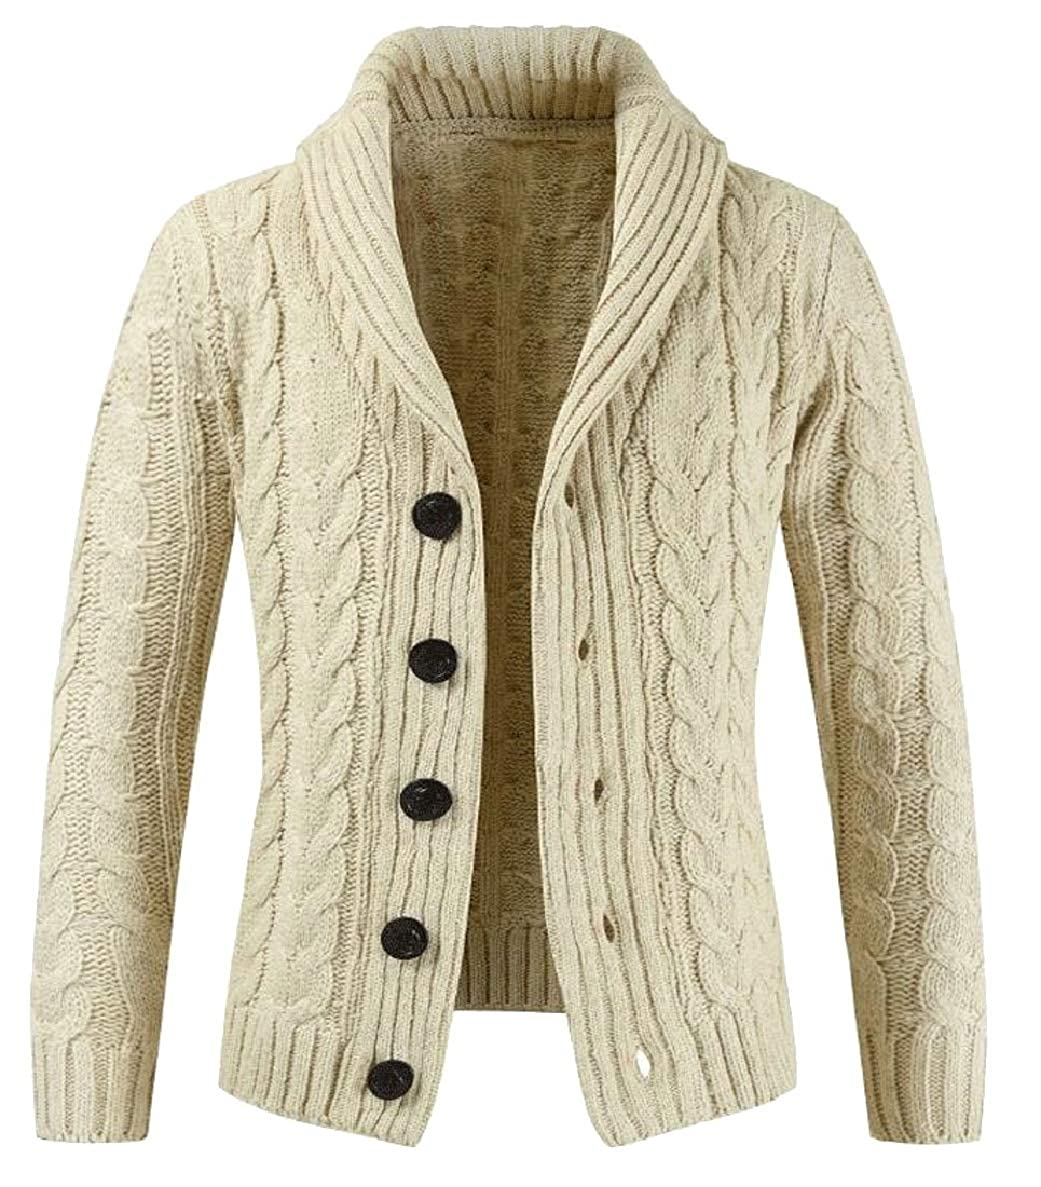 ONTBYB Mens Shawl Collar Knitted Cardigans Loose Fit Buttons Down Sweaters